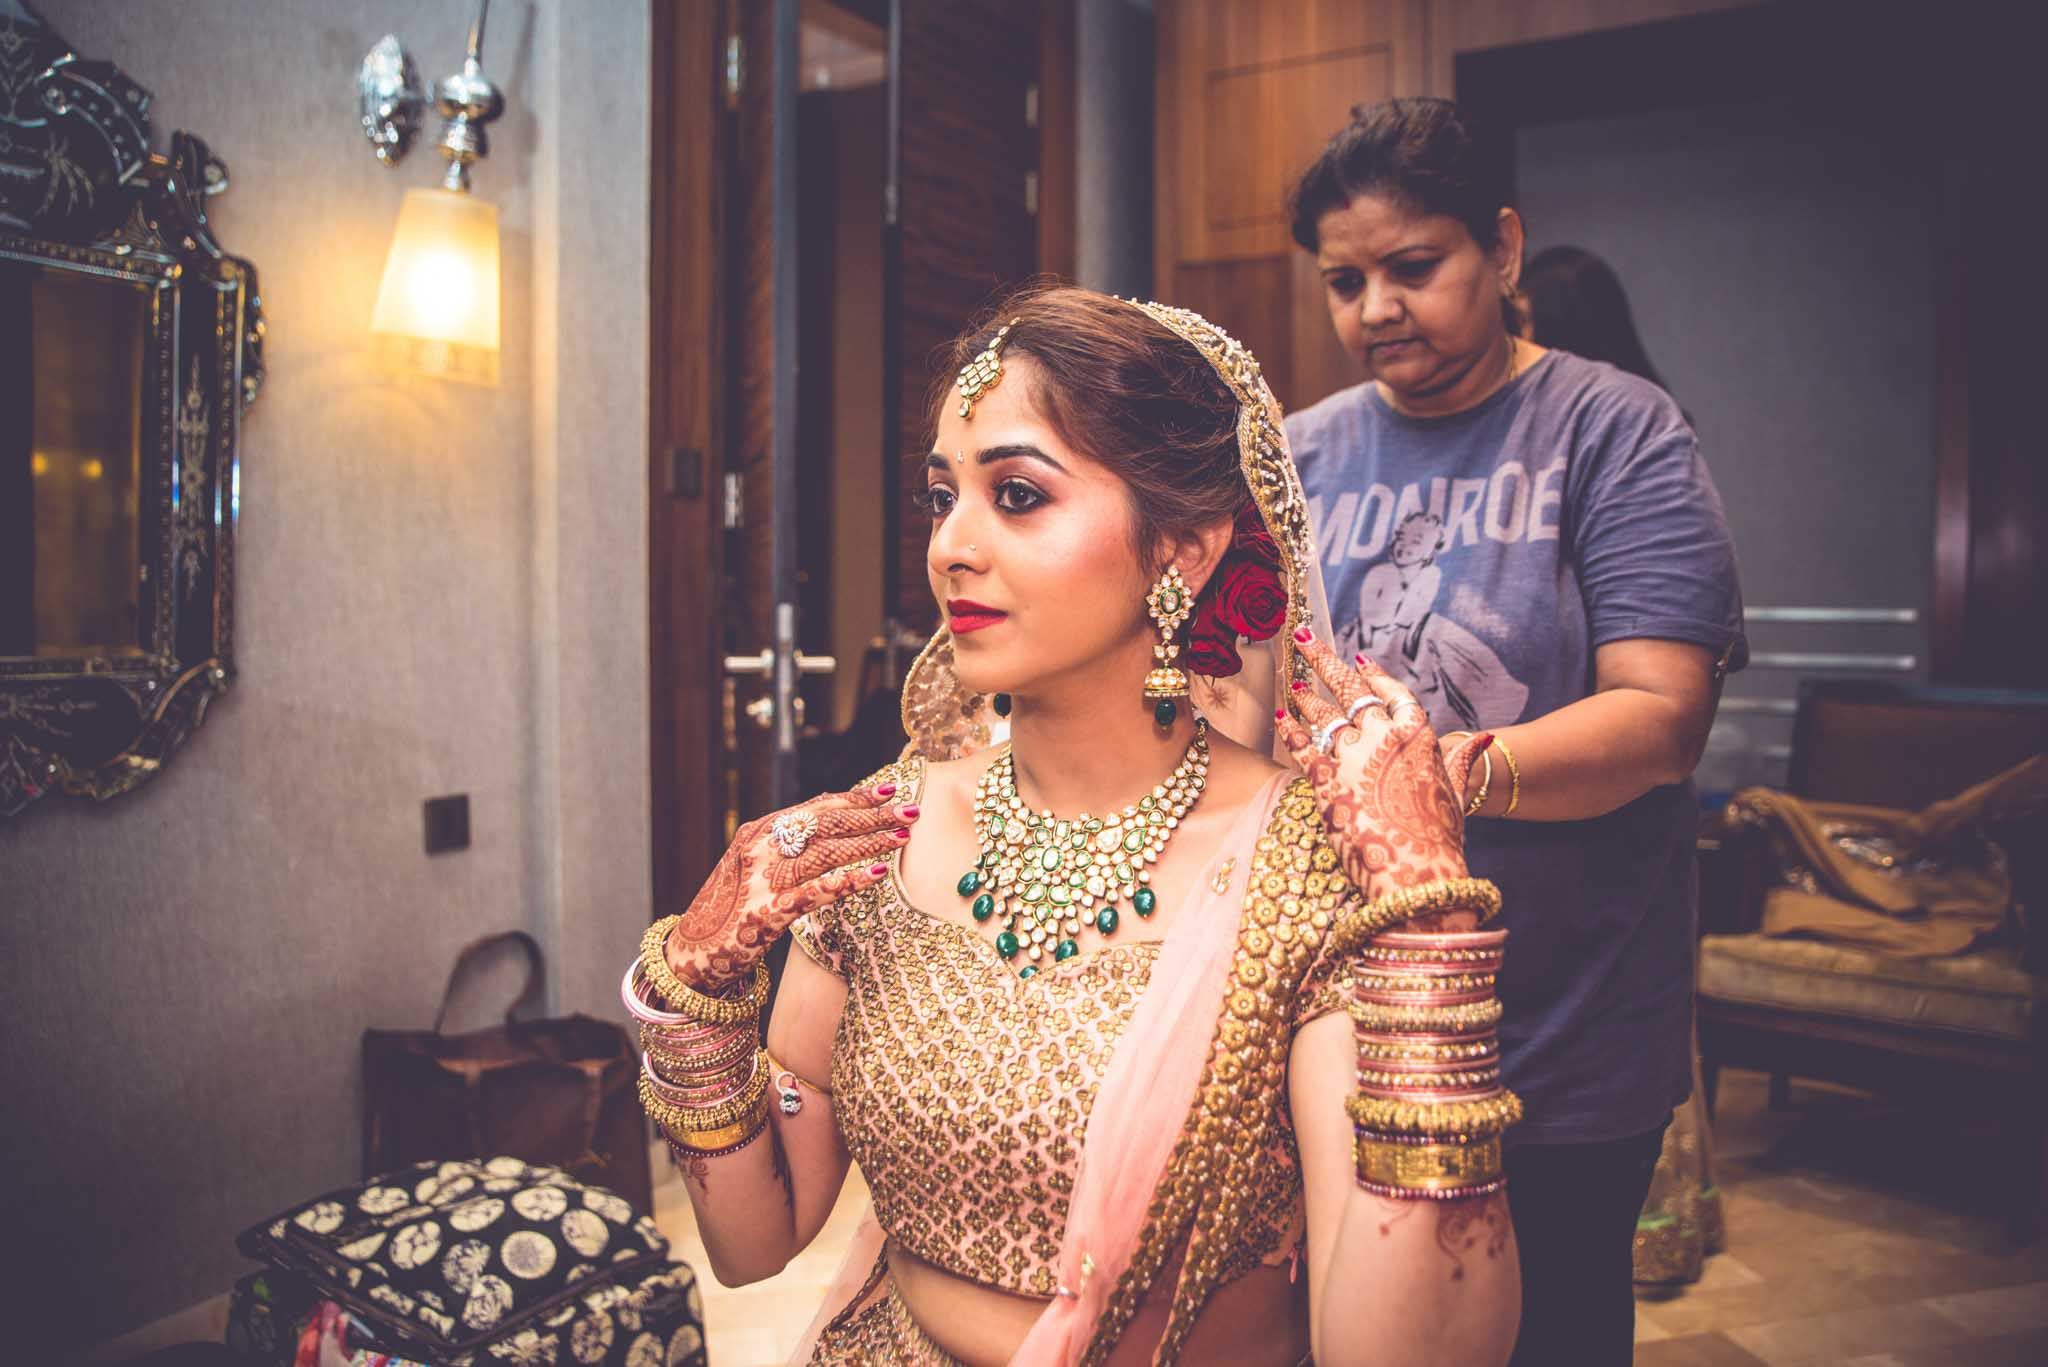 StRegis-Palladium-Mumbai-Candid-Wedding-Photography-17